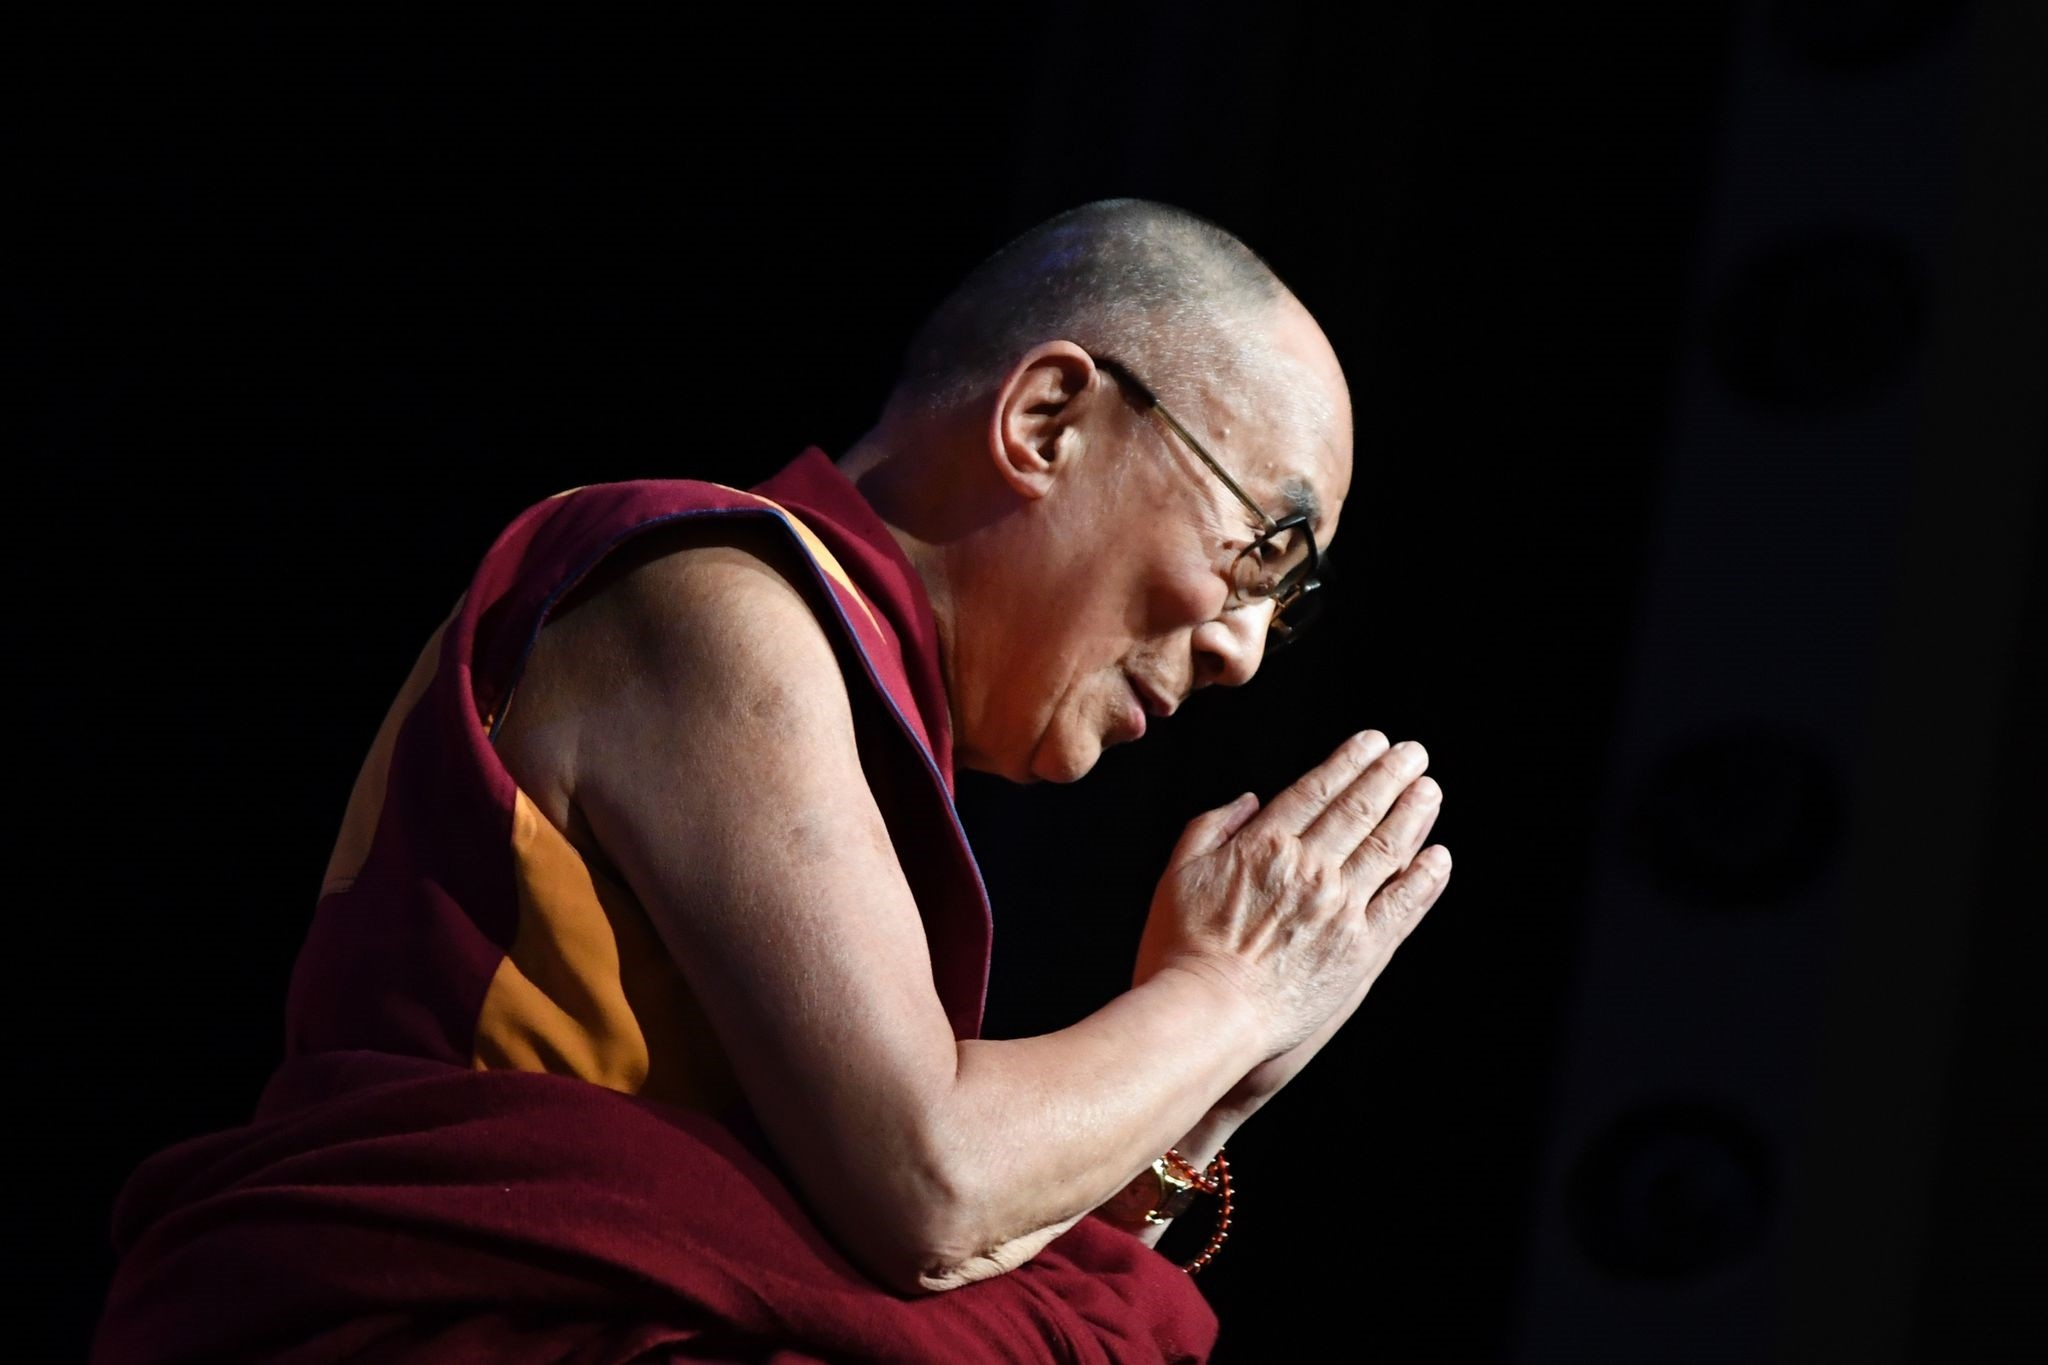 The Dalai Lama gestures during a group hearing at the Palais des Congres, on September 13, 2016 in Paris, during his visit to France. (AFP PHOTO)